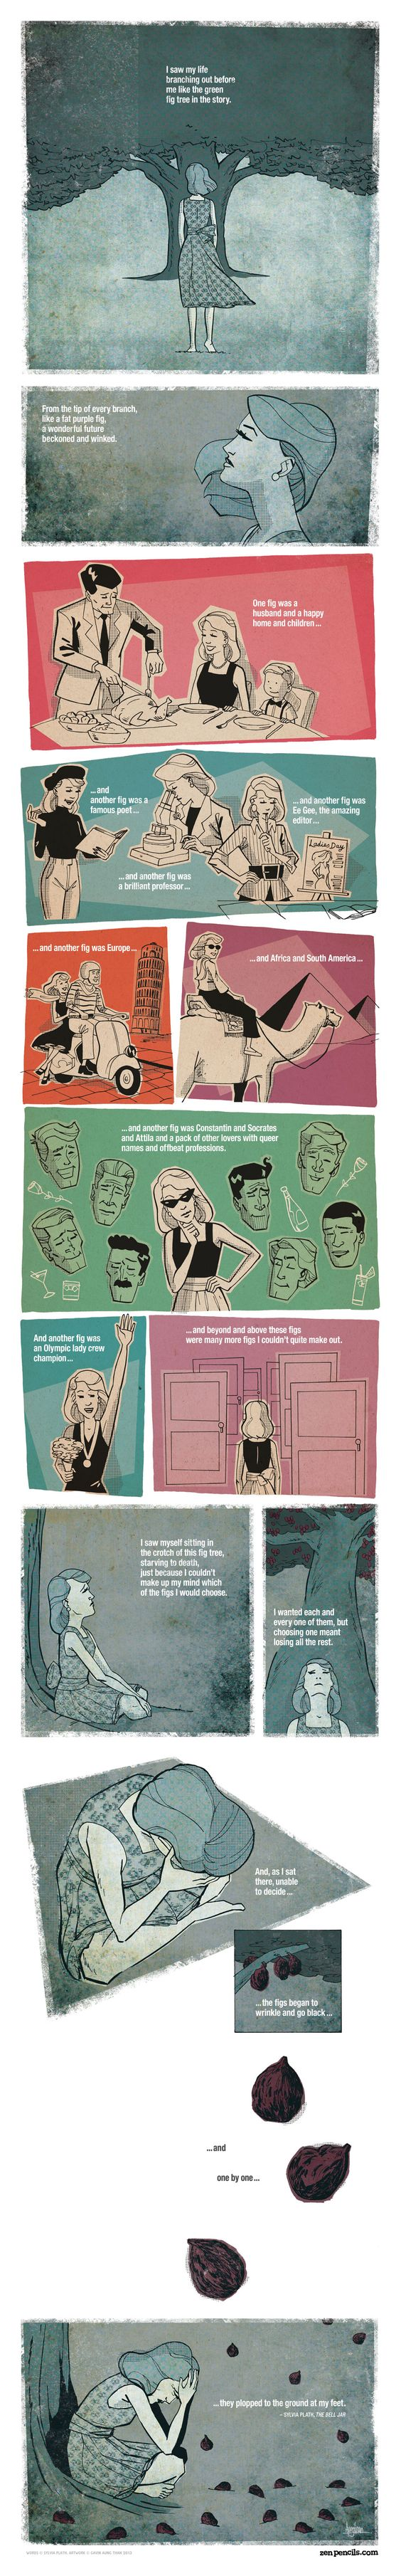 130. SYLVIA PLATH: The fig tree - I love Zen Pencils and I LOVE this passage from The Bell Jar.: